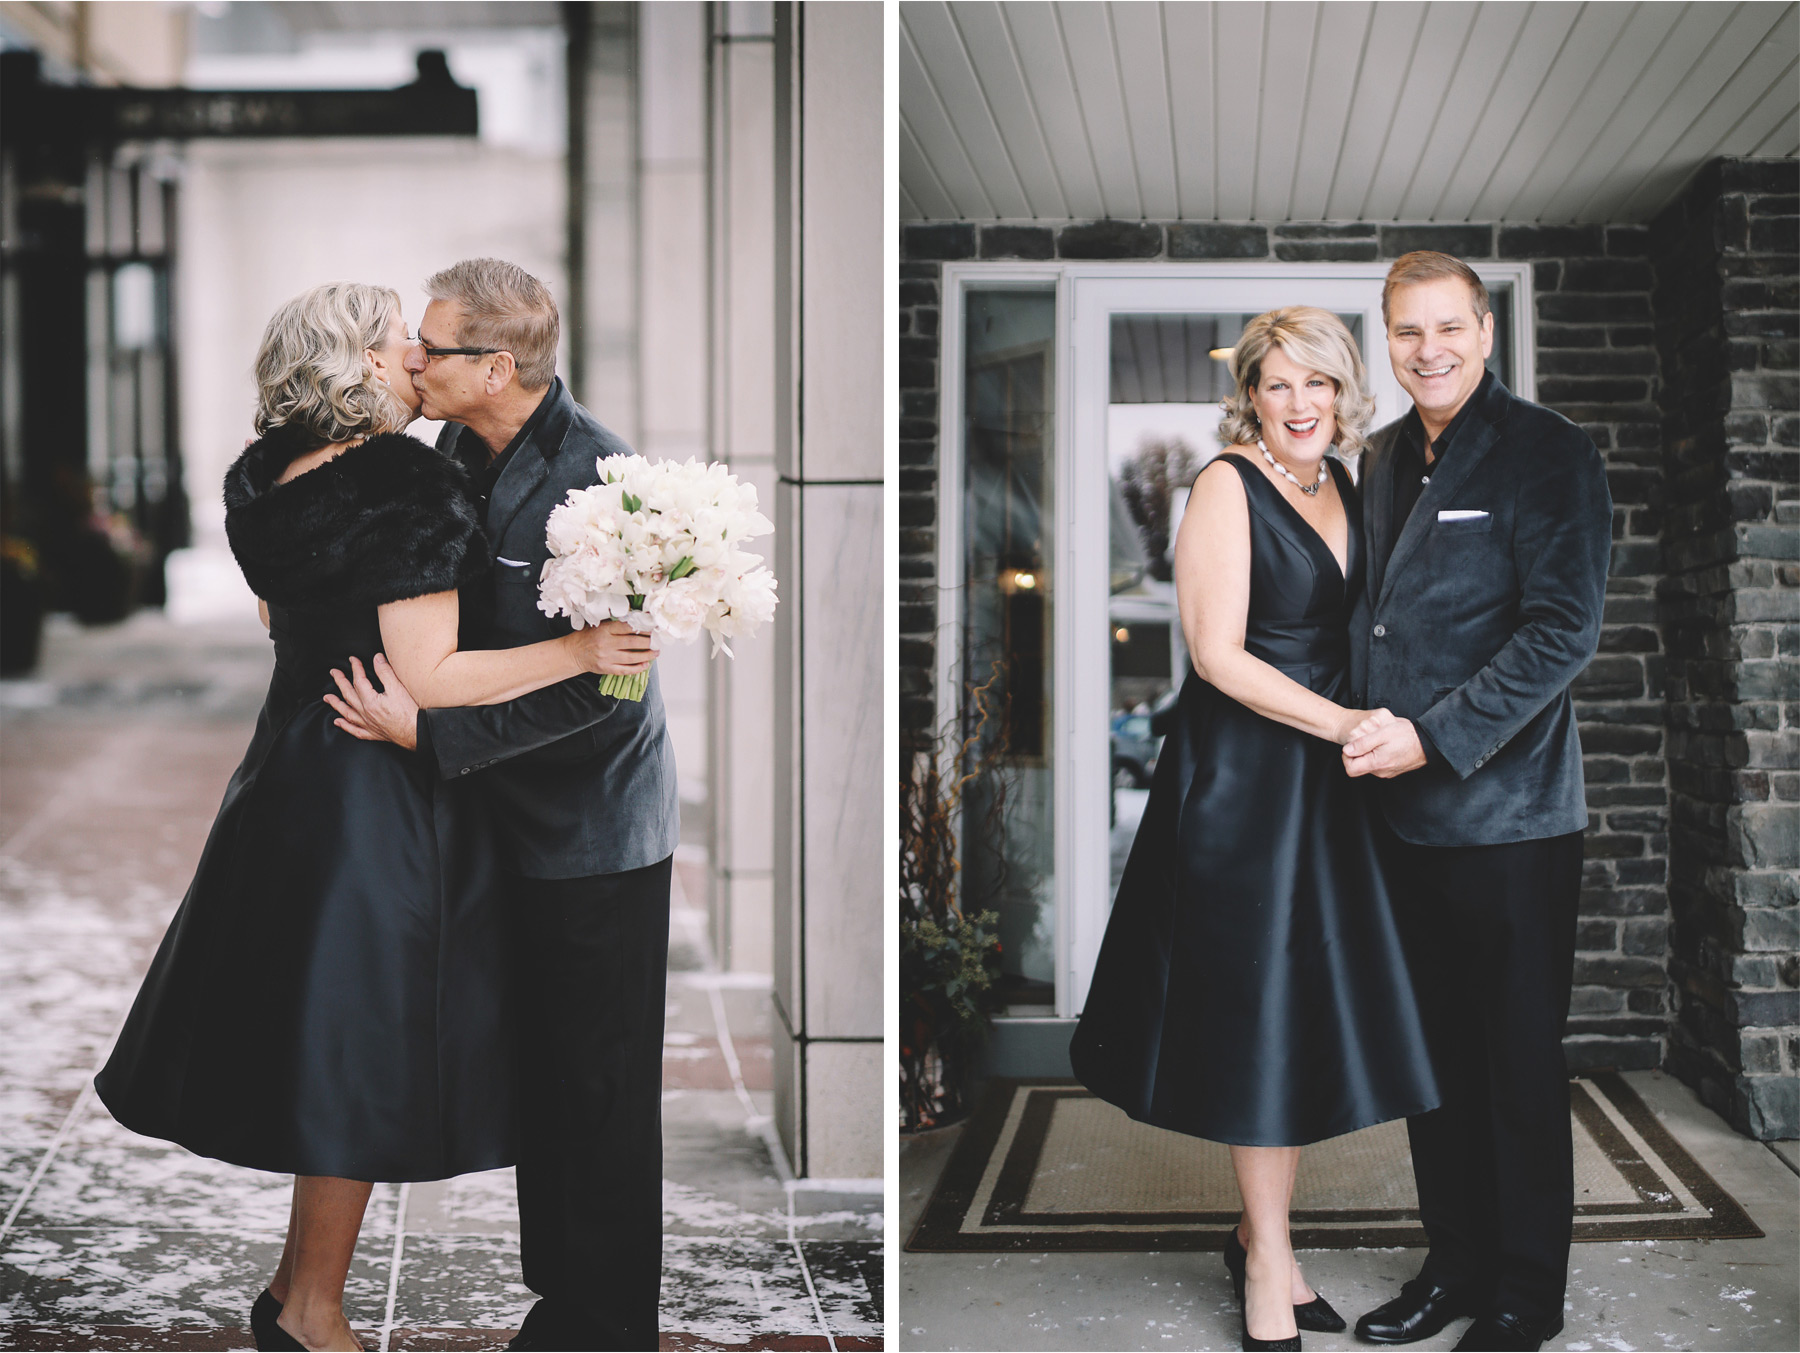 08-Minneapolis-Minnesota-Wedding-Photography-by-Vick-Photography-Downtown-Loews-Hotel-Bride-and-Groom-Joan-and-Tim.jpg